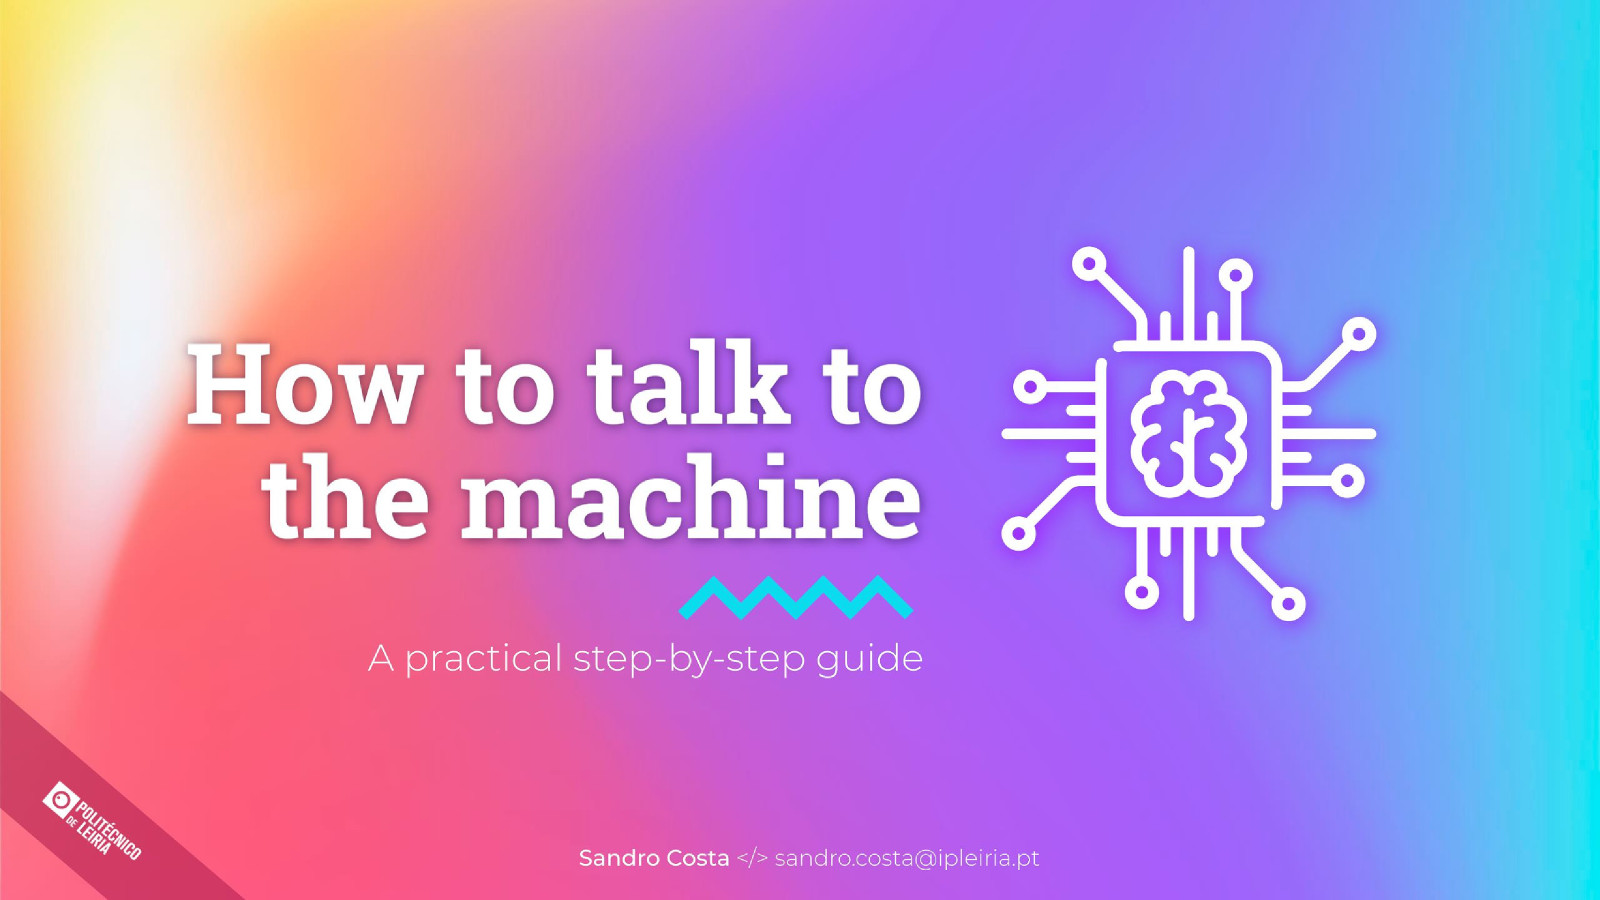 How to talk to the machine